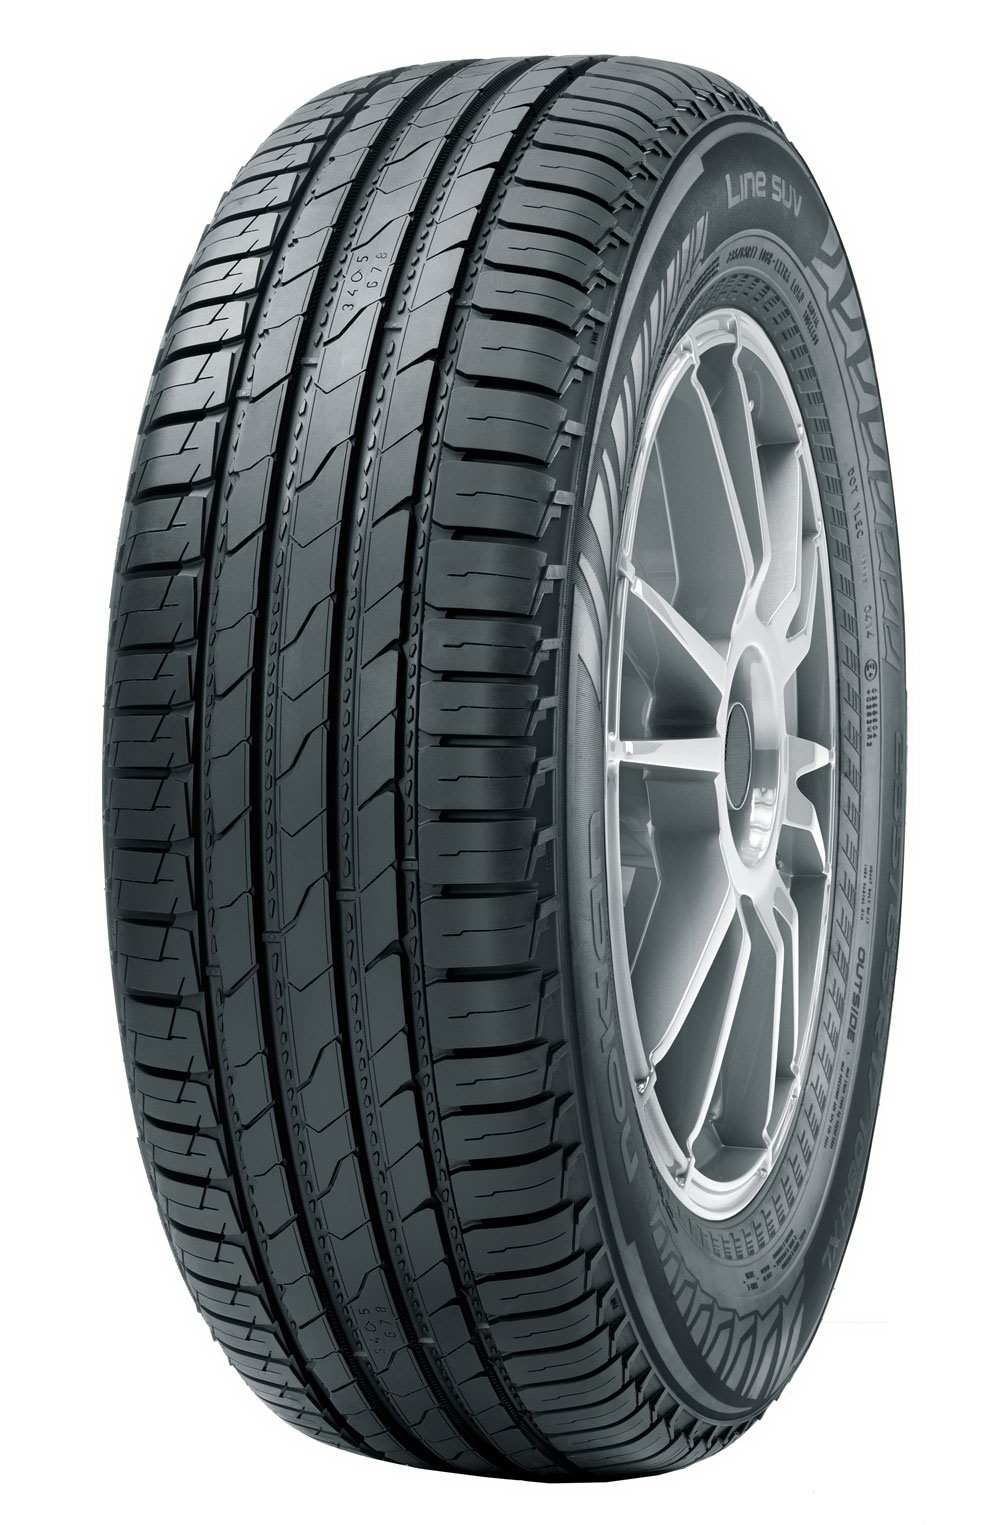 Anvelope all seasons NOKIAN WEATHERPROOF C 195/75 R16C 107R